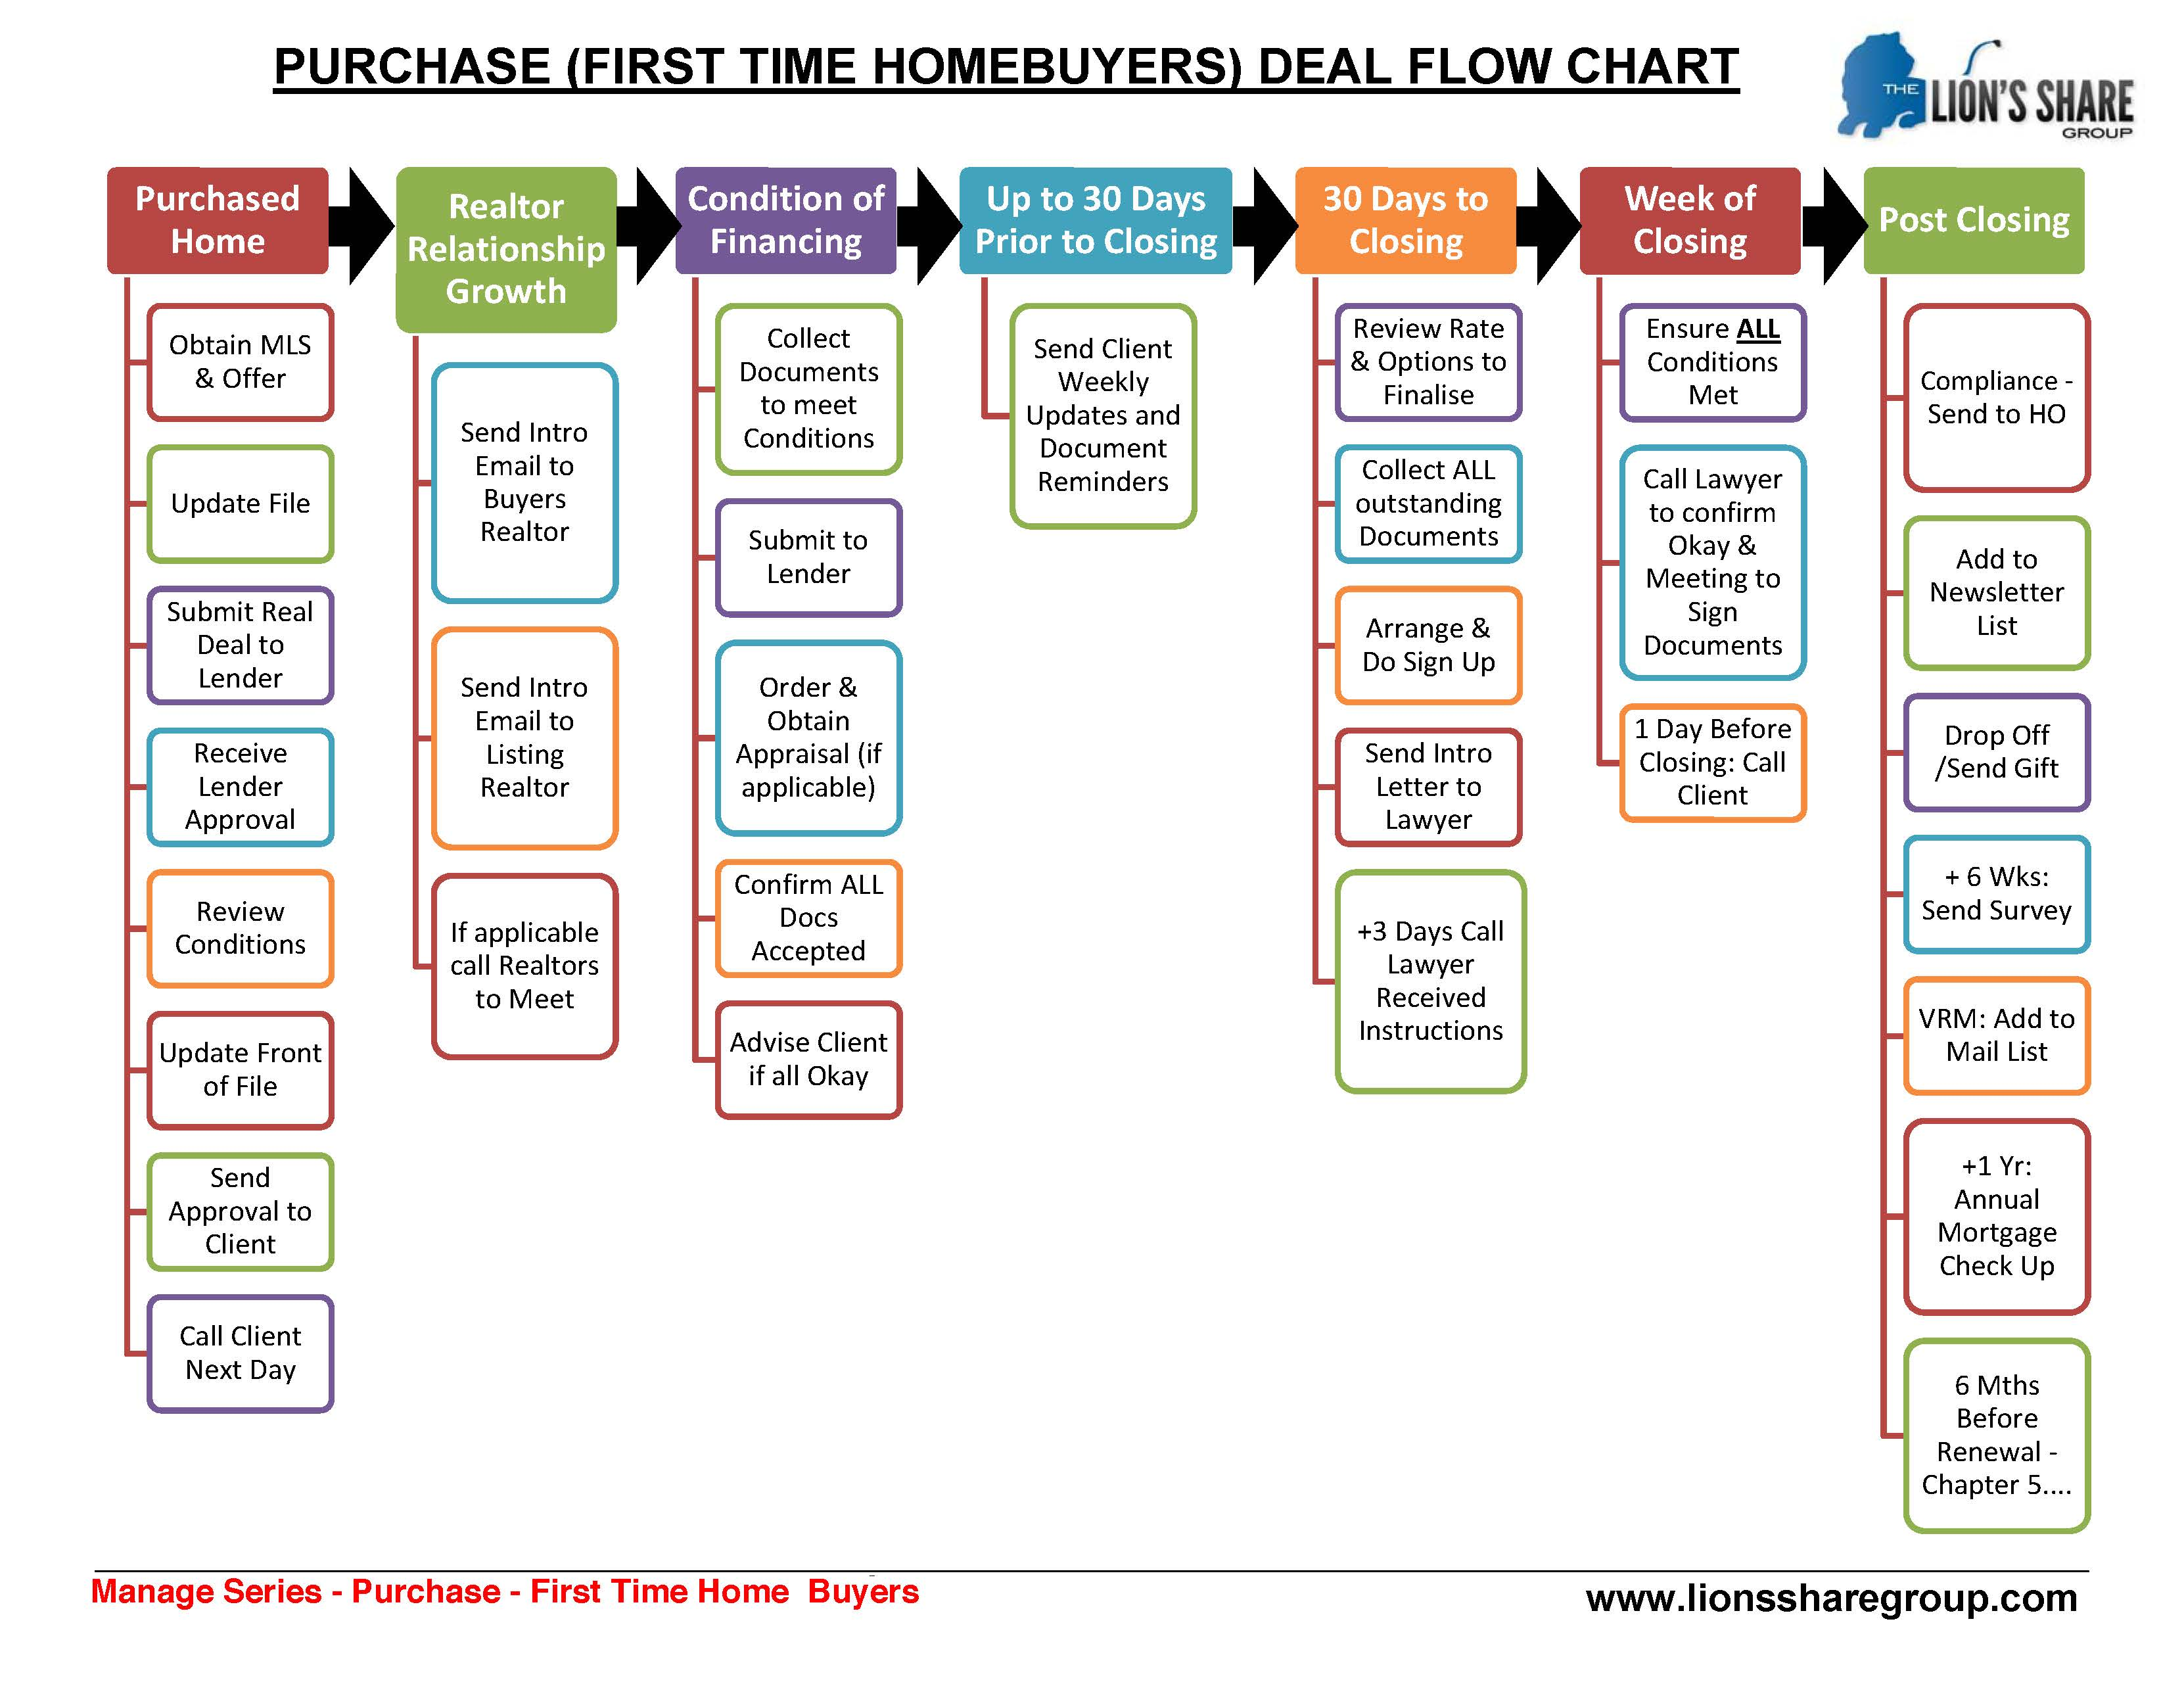 process flow chart 101 managing business 101 purchase principal  managing business 101 purchase principal